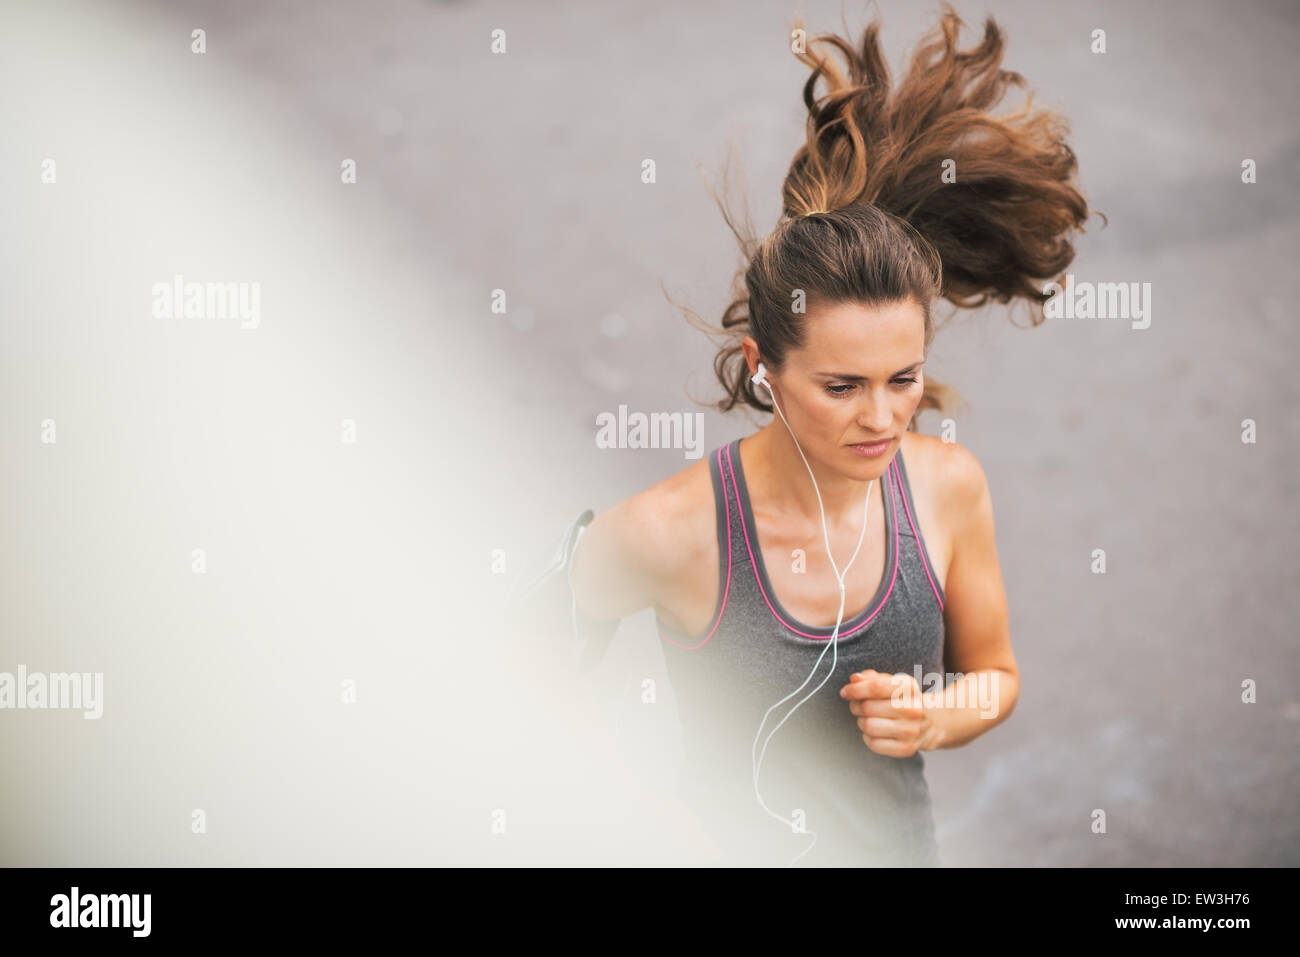 A woman jogger is running, concentrated and in the zone as she listens to music on her earbuds. - Stock Image